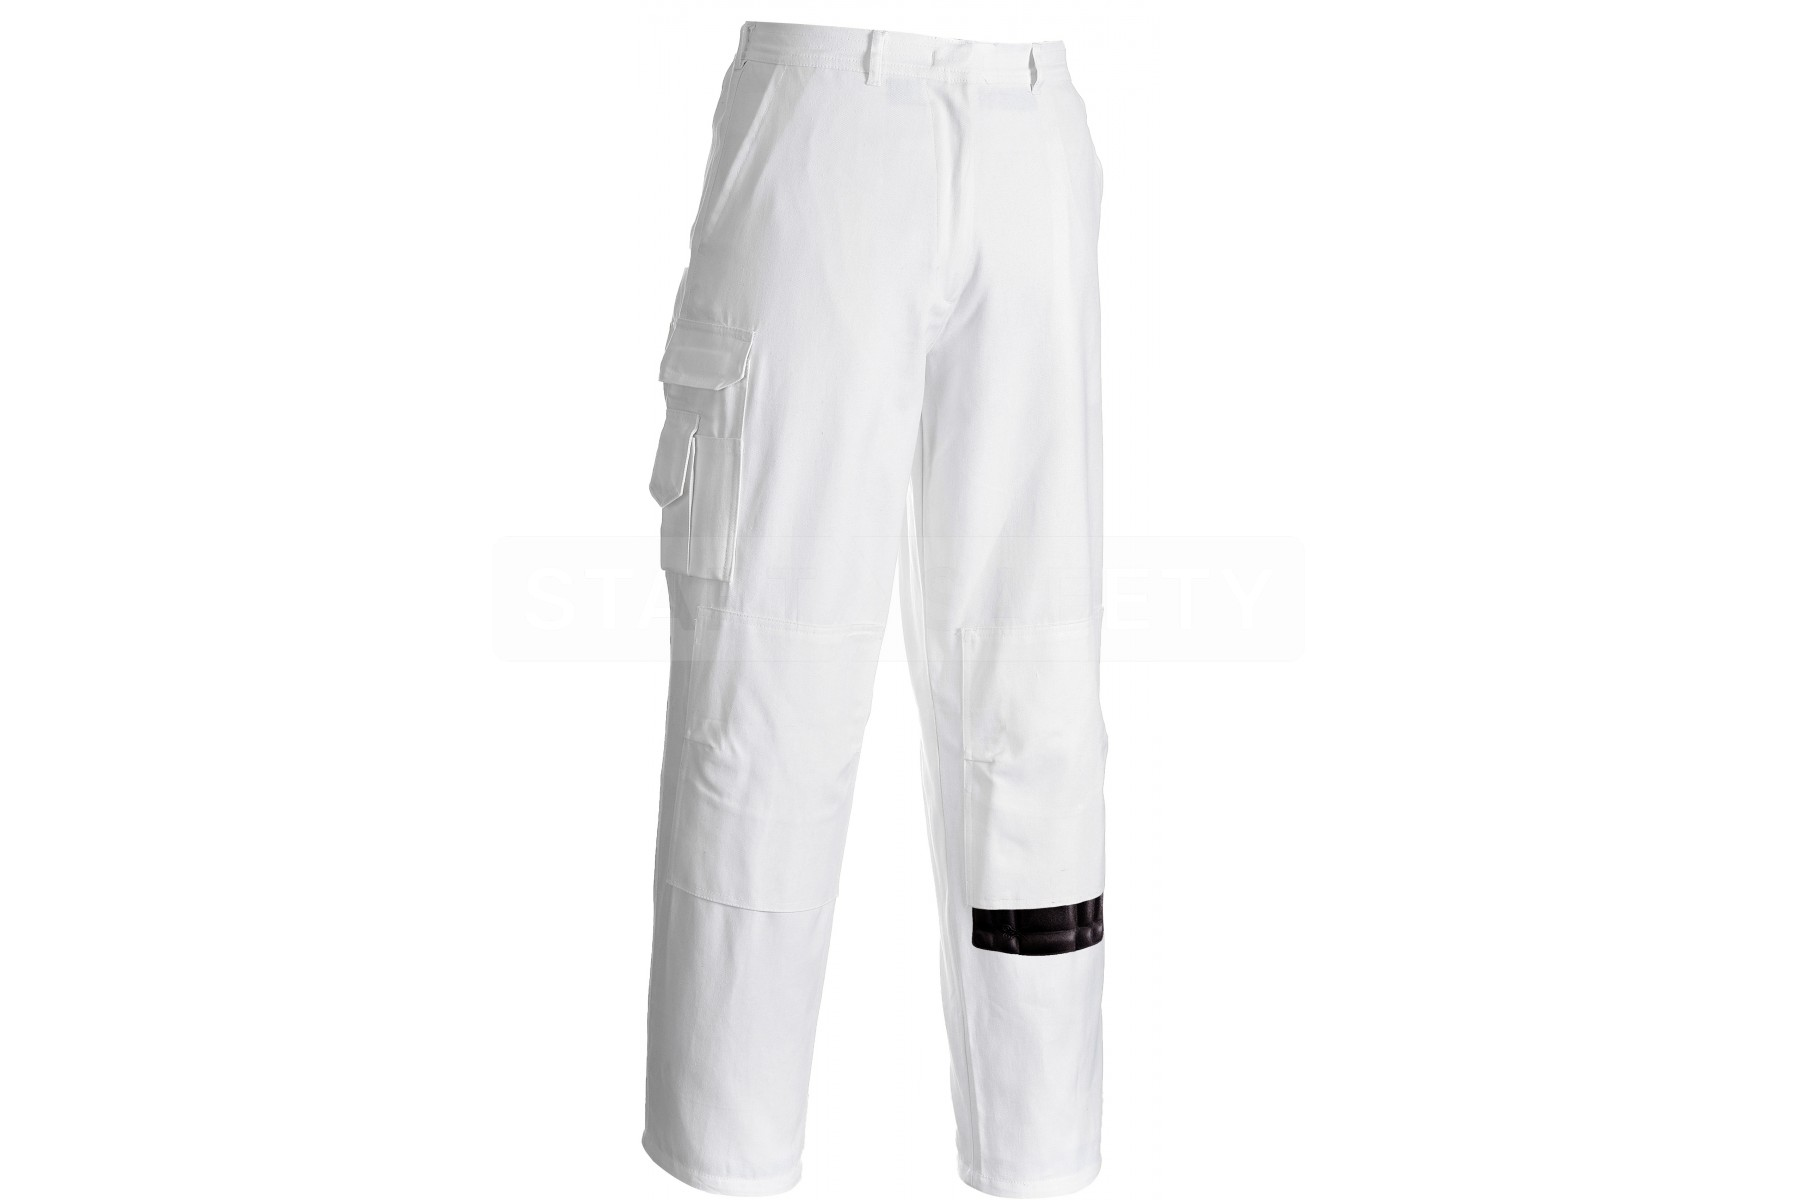 free s b country comfortable pants womens zoom glacier blue hover women products to comforter pant jogger